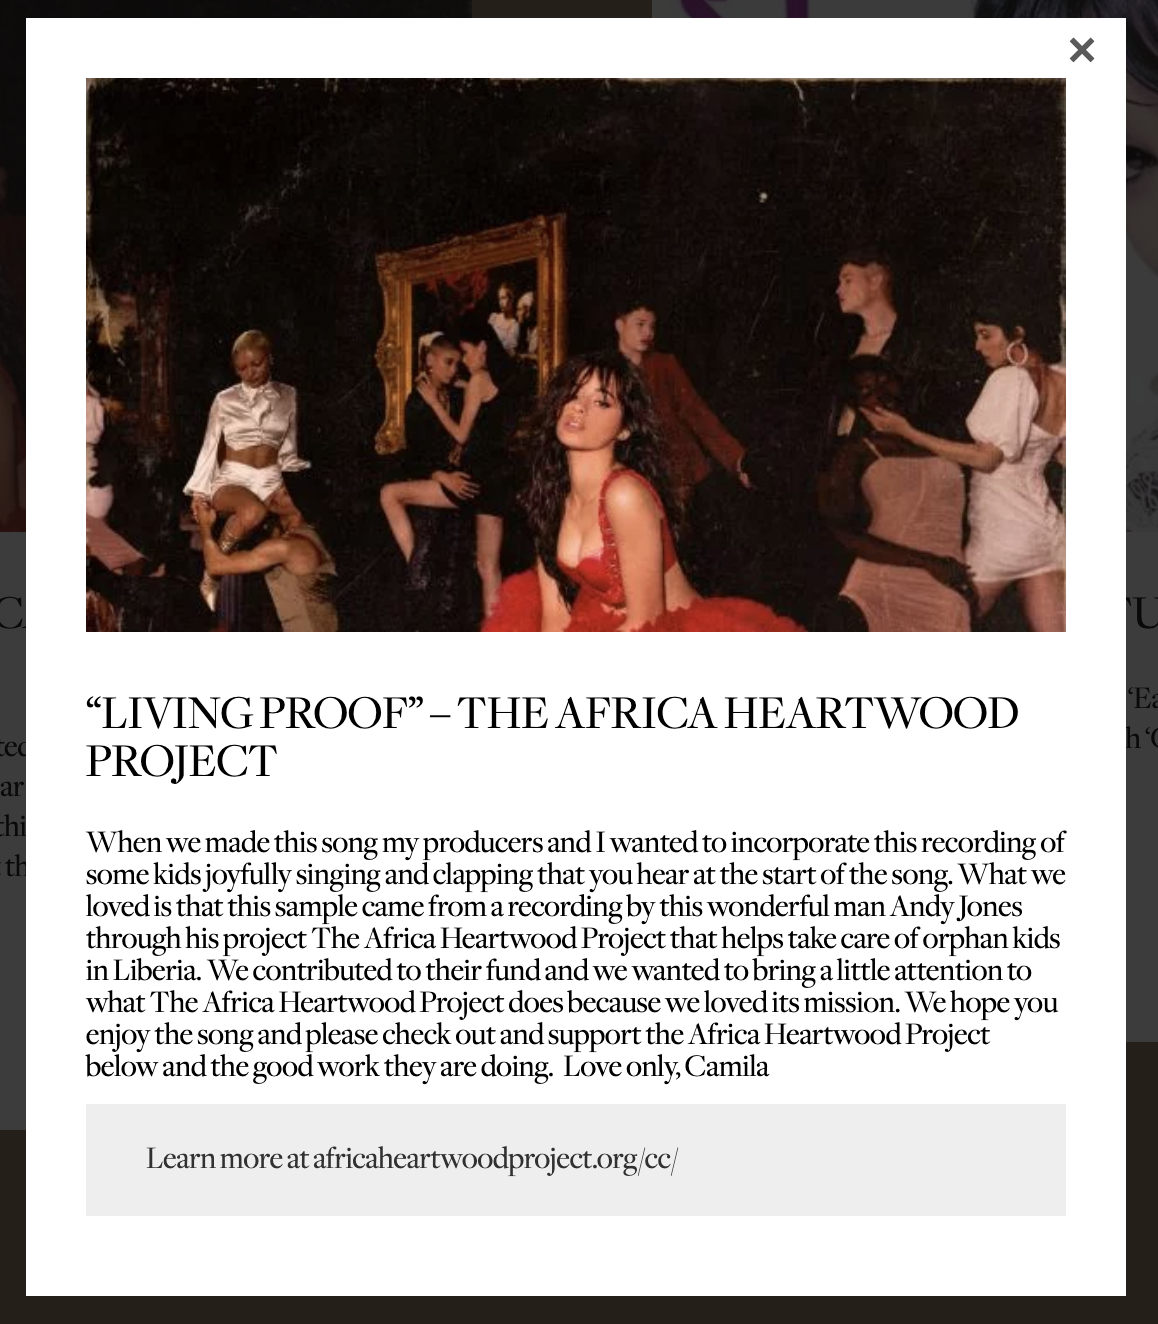 Camila Cabello and Africa Heartwood Project